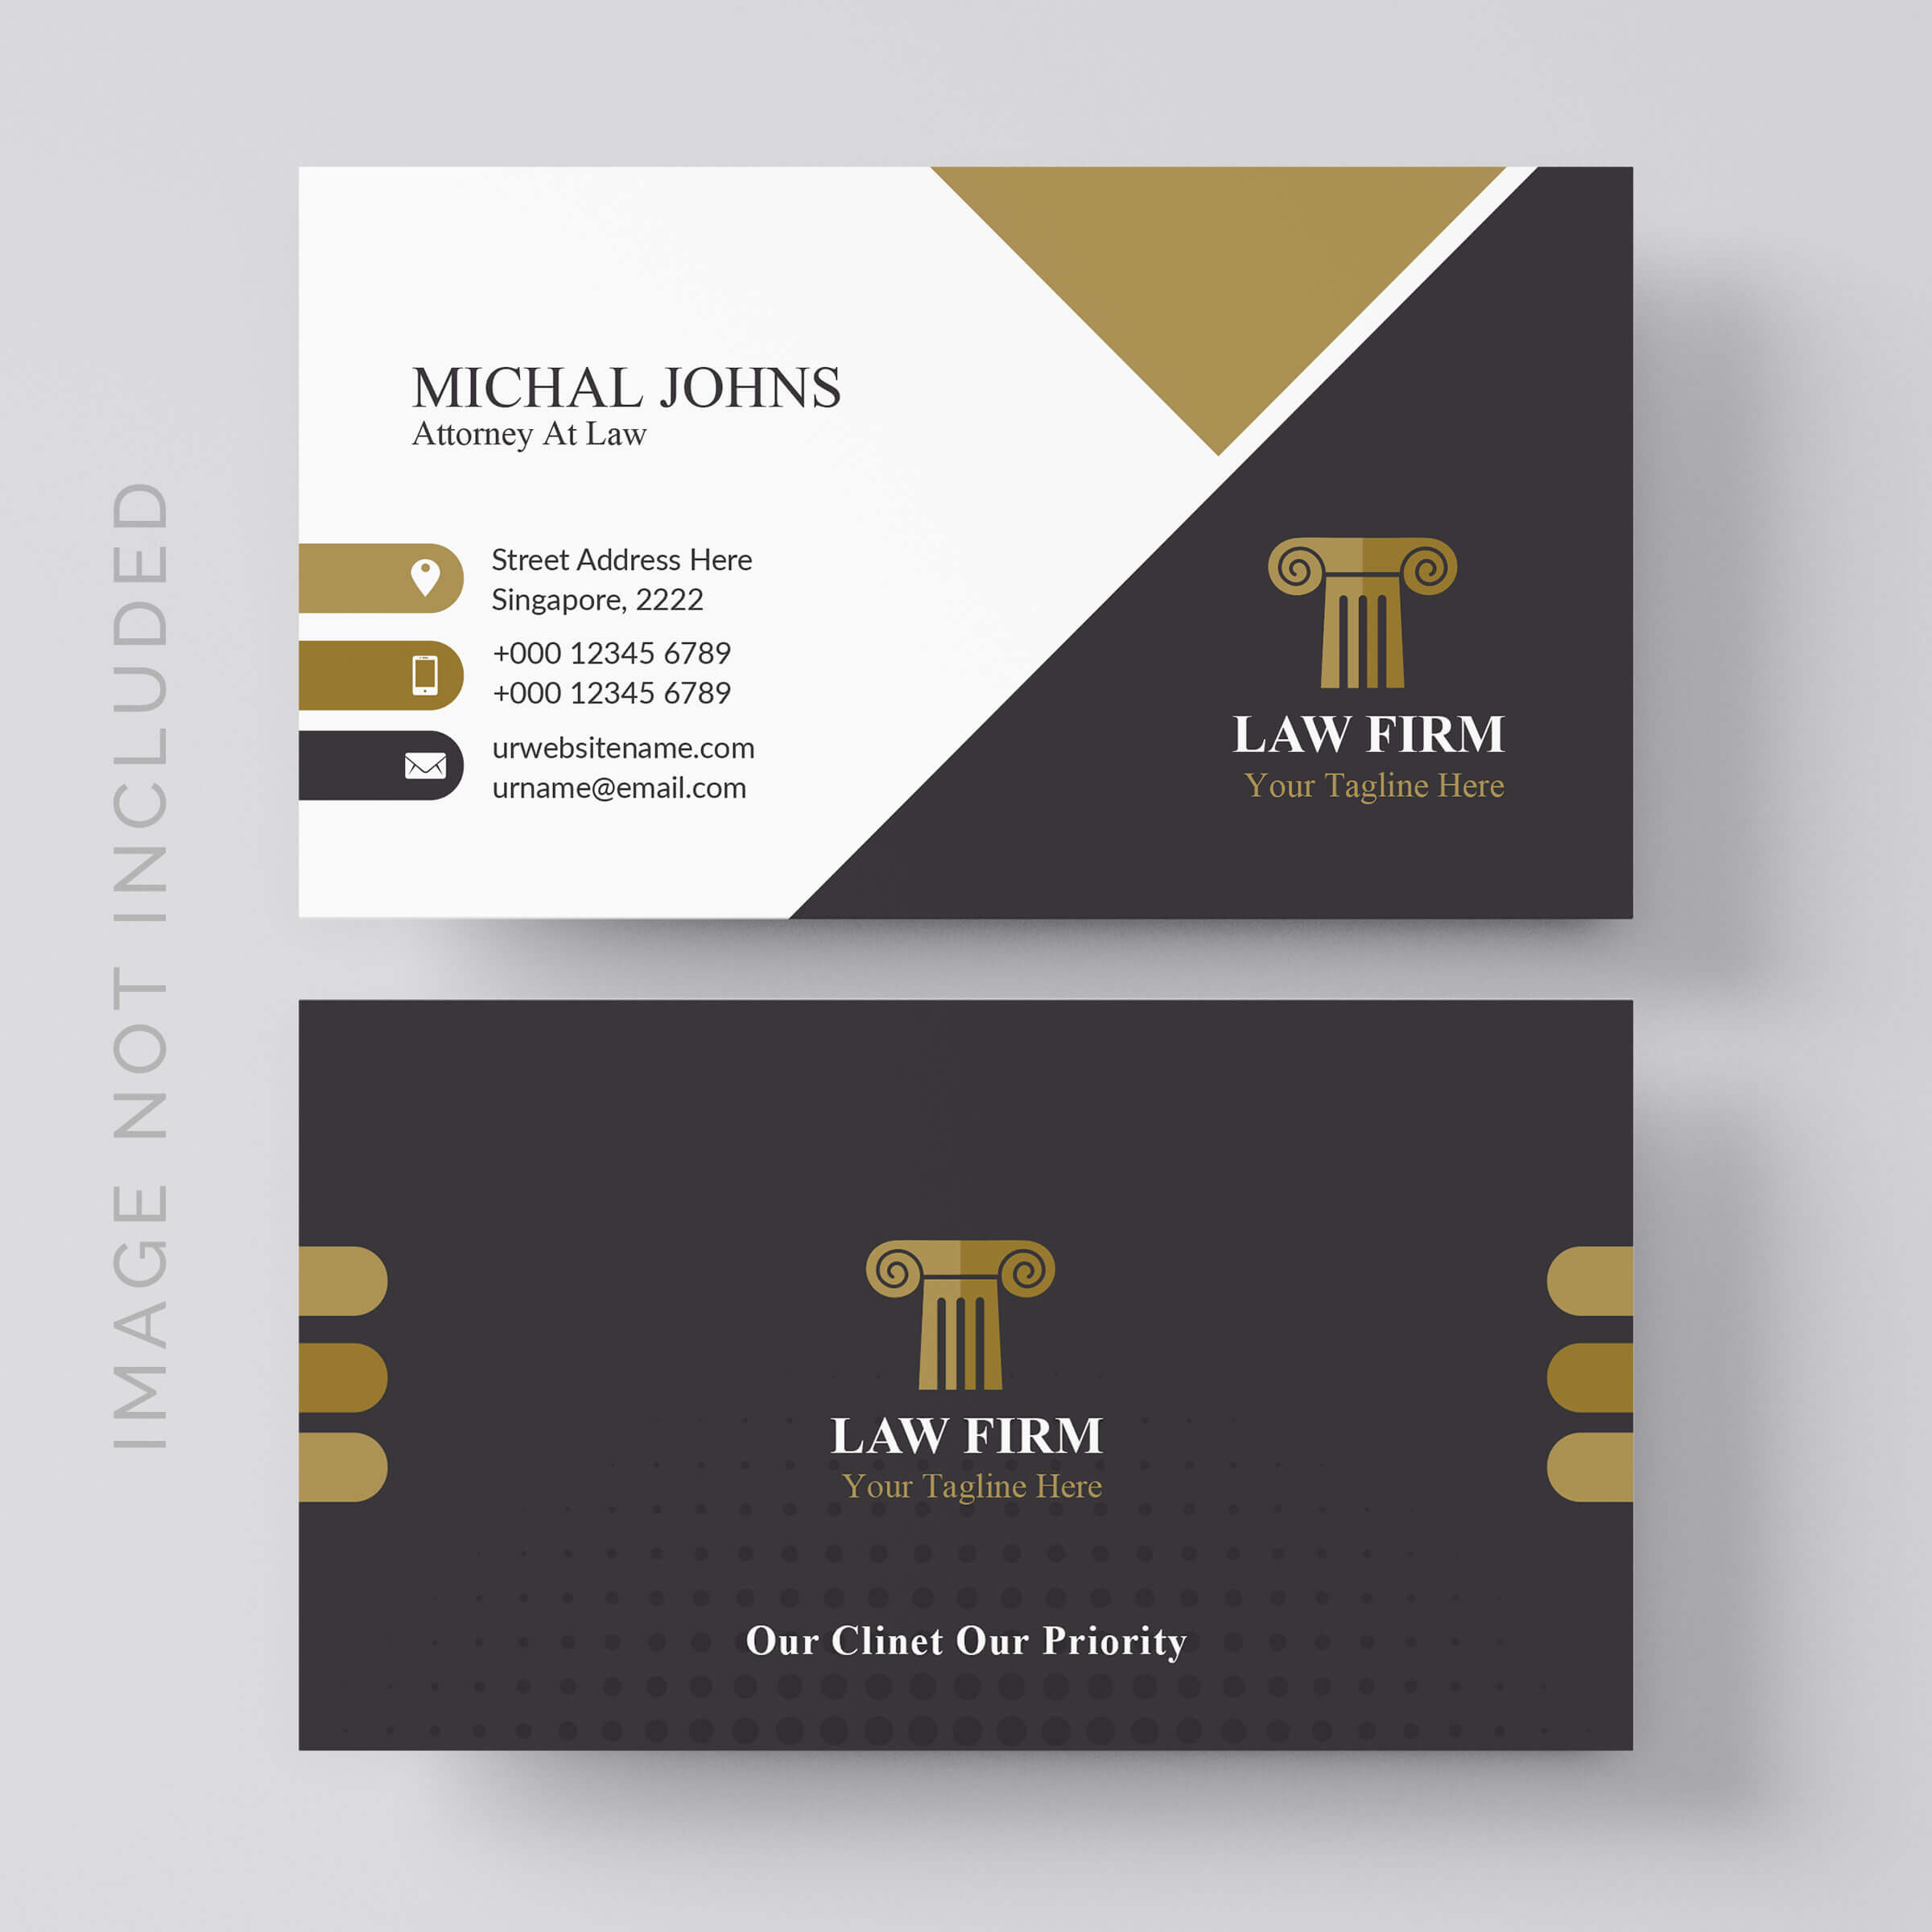 Lawyer Business Card Free Vector Art – (7 Free Downloads) With Regard To Lawyer Business Cards Templates